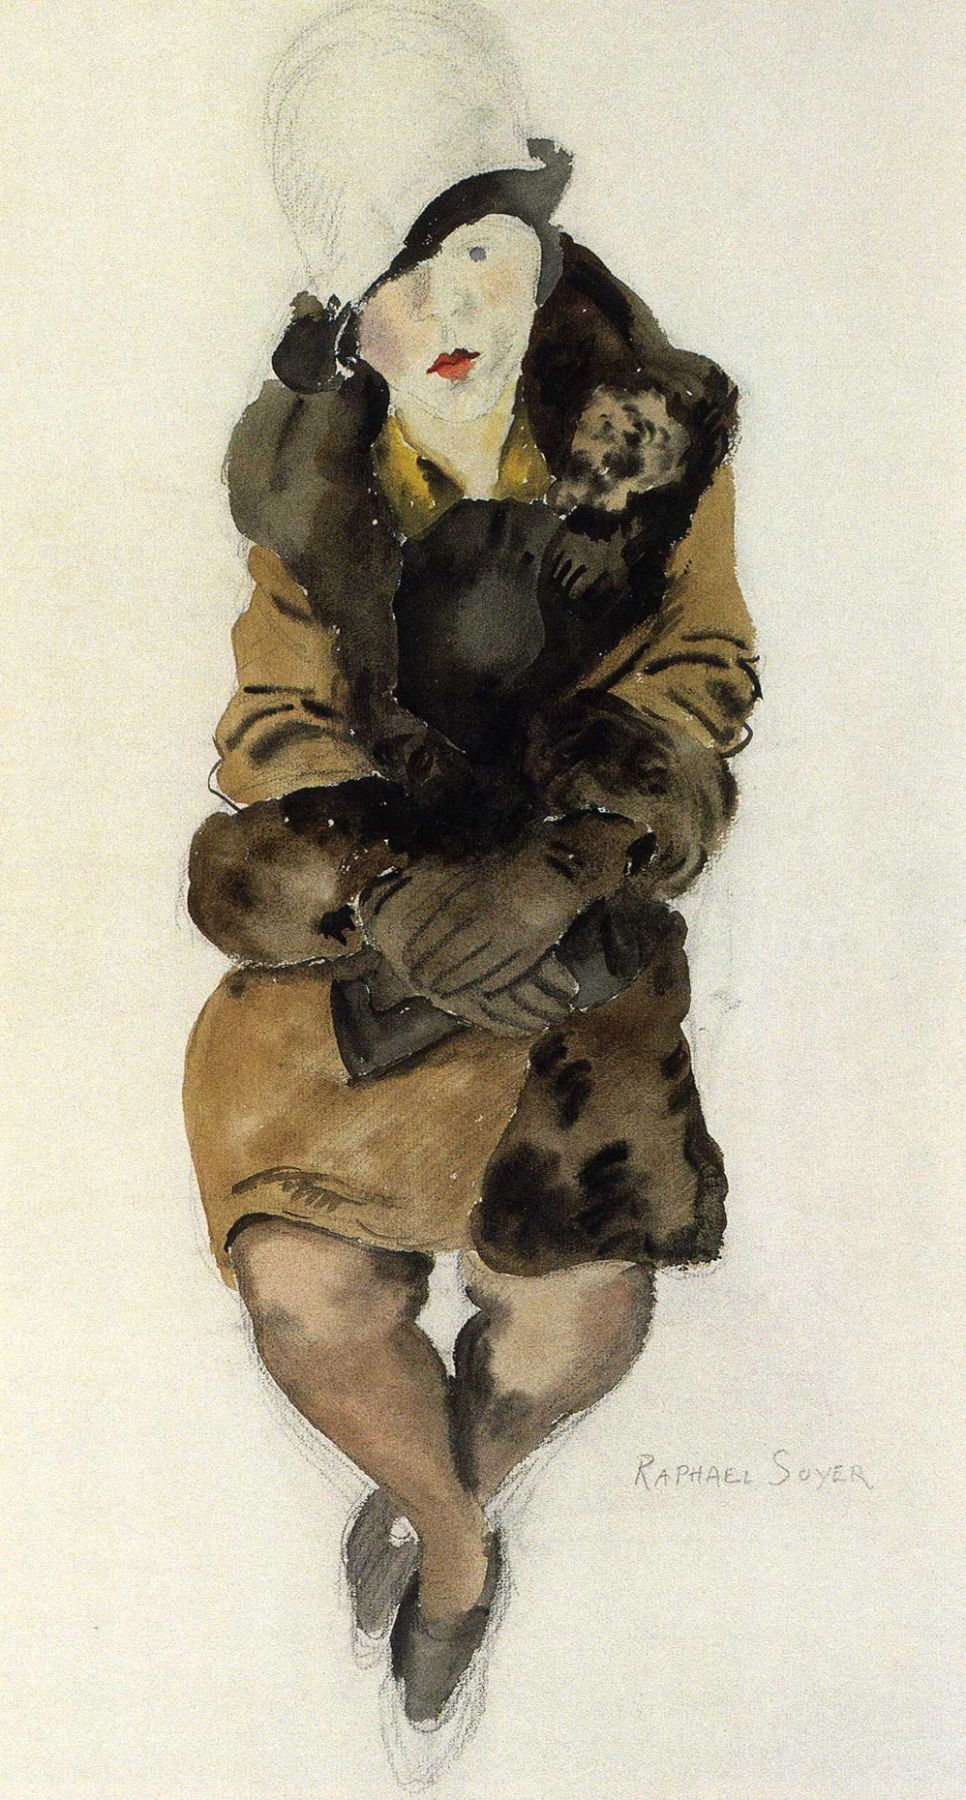 Raphael Soyer, Woman in a Coat and Hat (SOLD), c. 1928, watercolor on paper, 20 1/2 x 11 inches